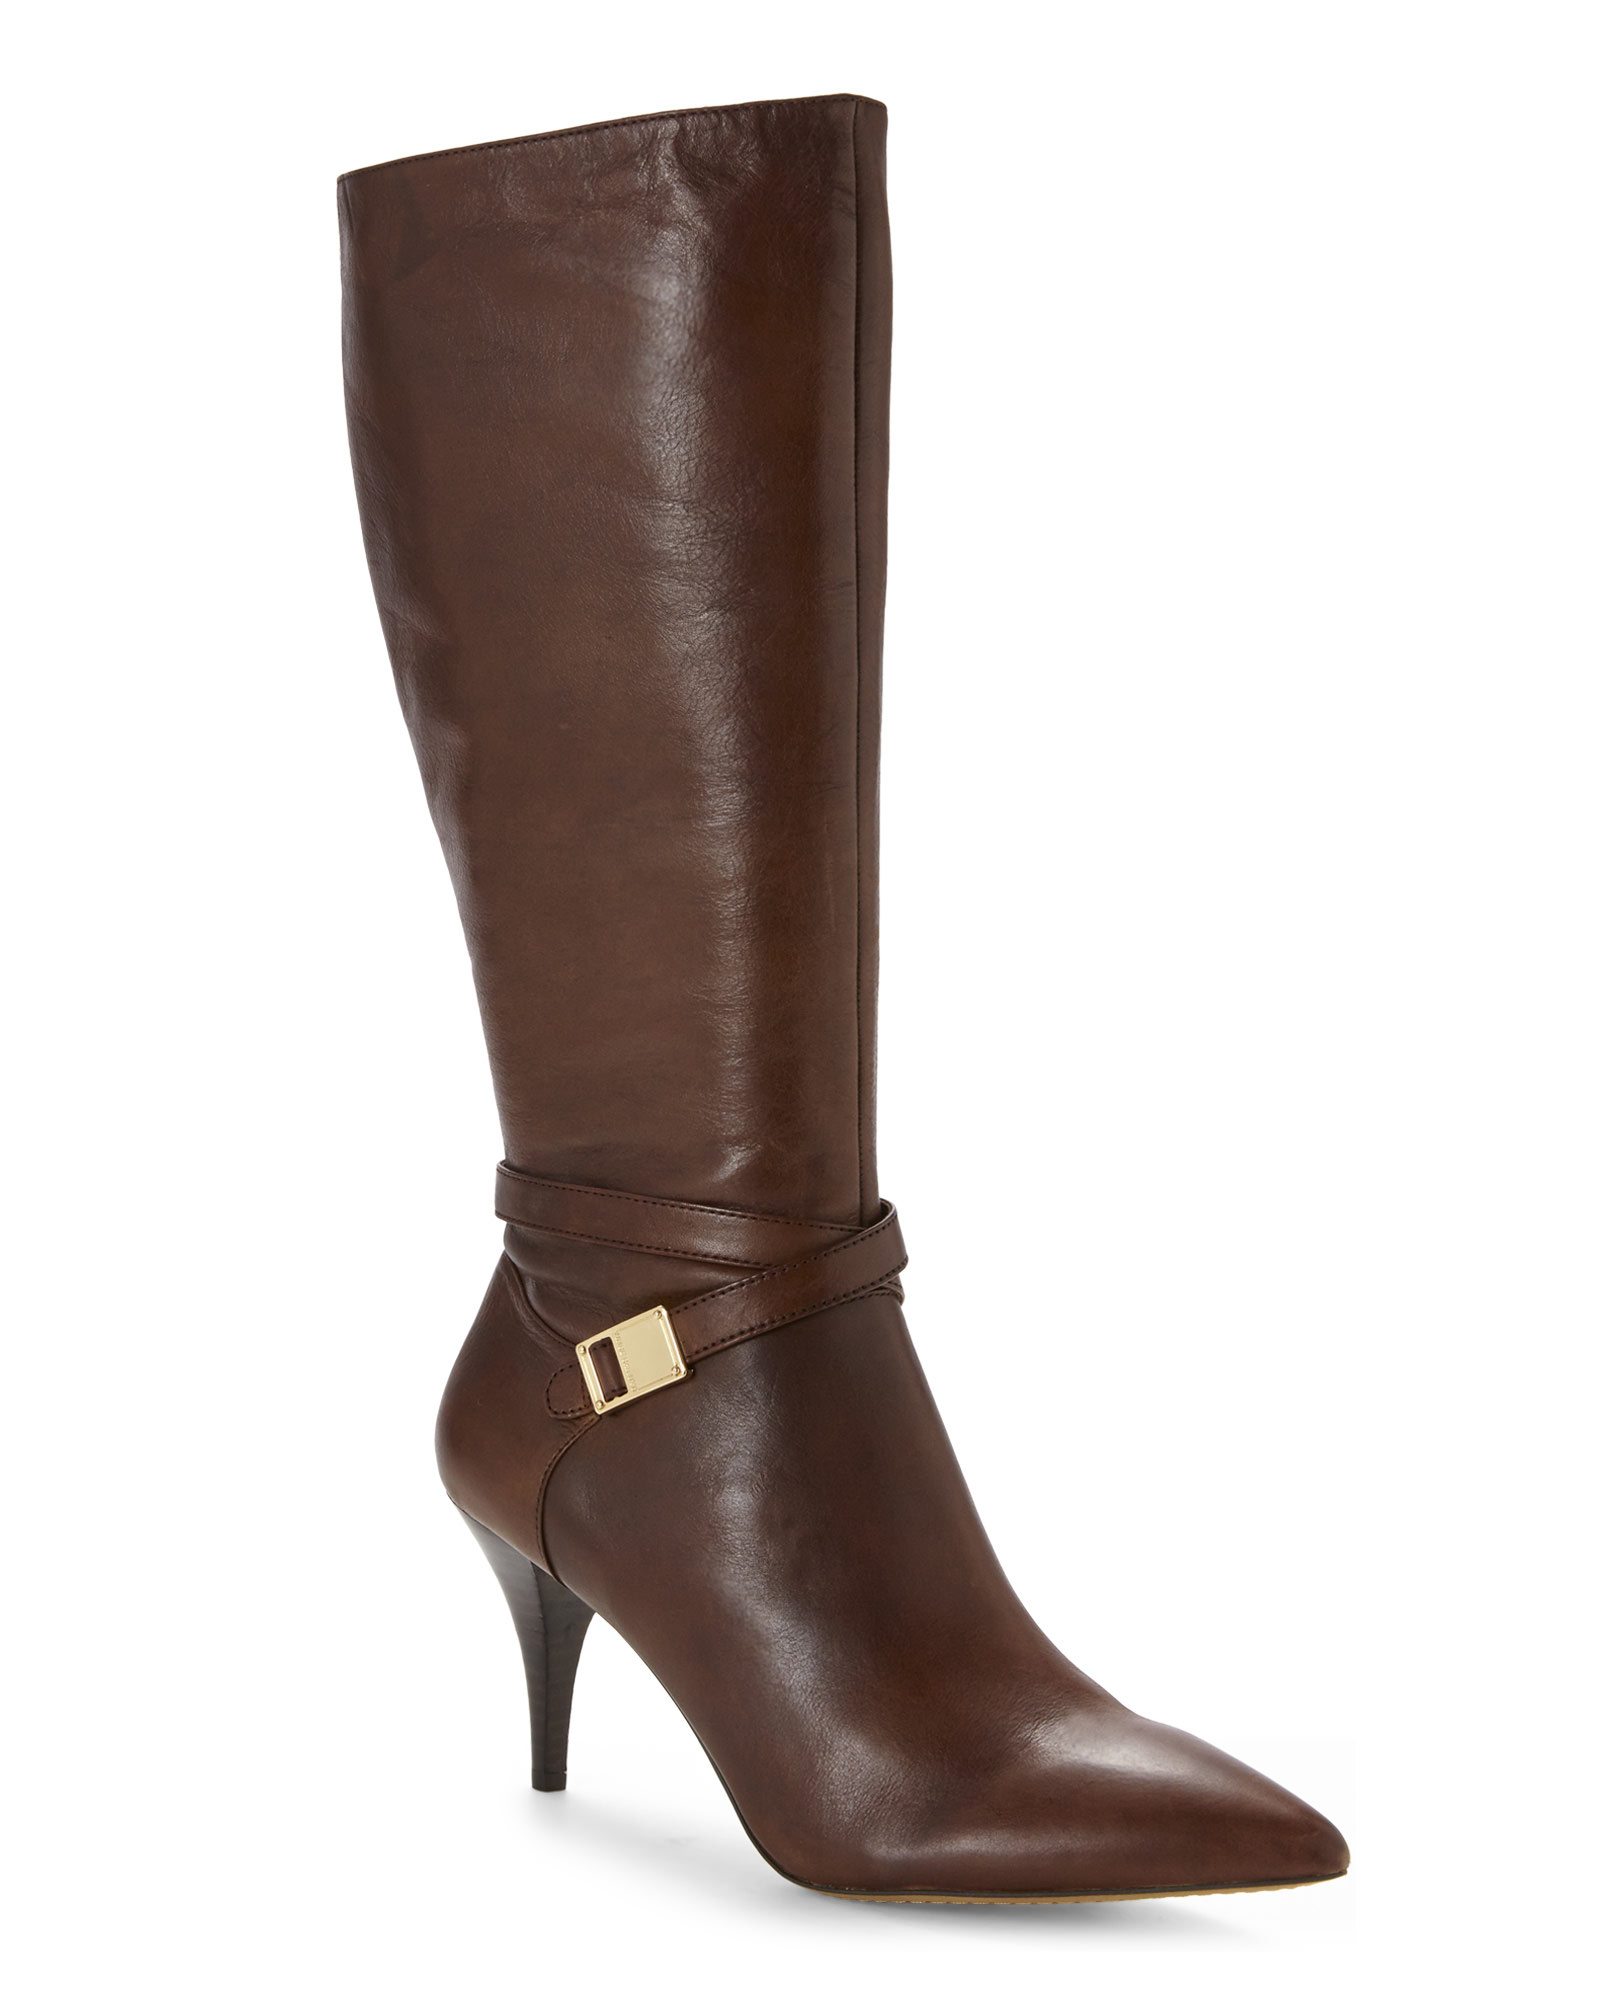 Vince camuto Russet Ofra Wide Calf Tall Boots in Brown | Lyst